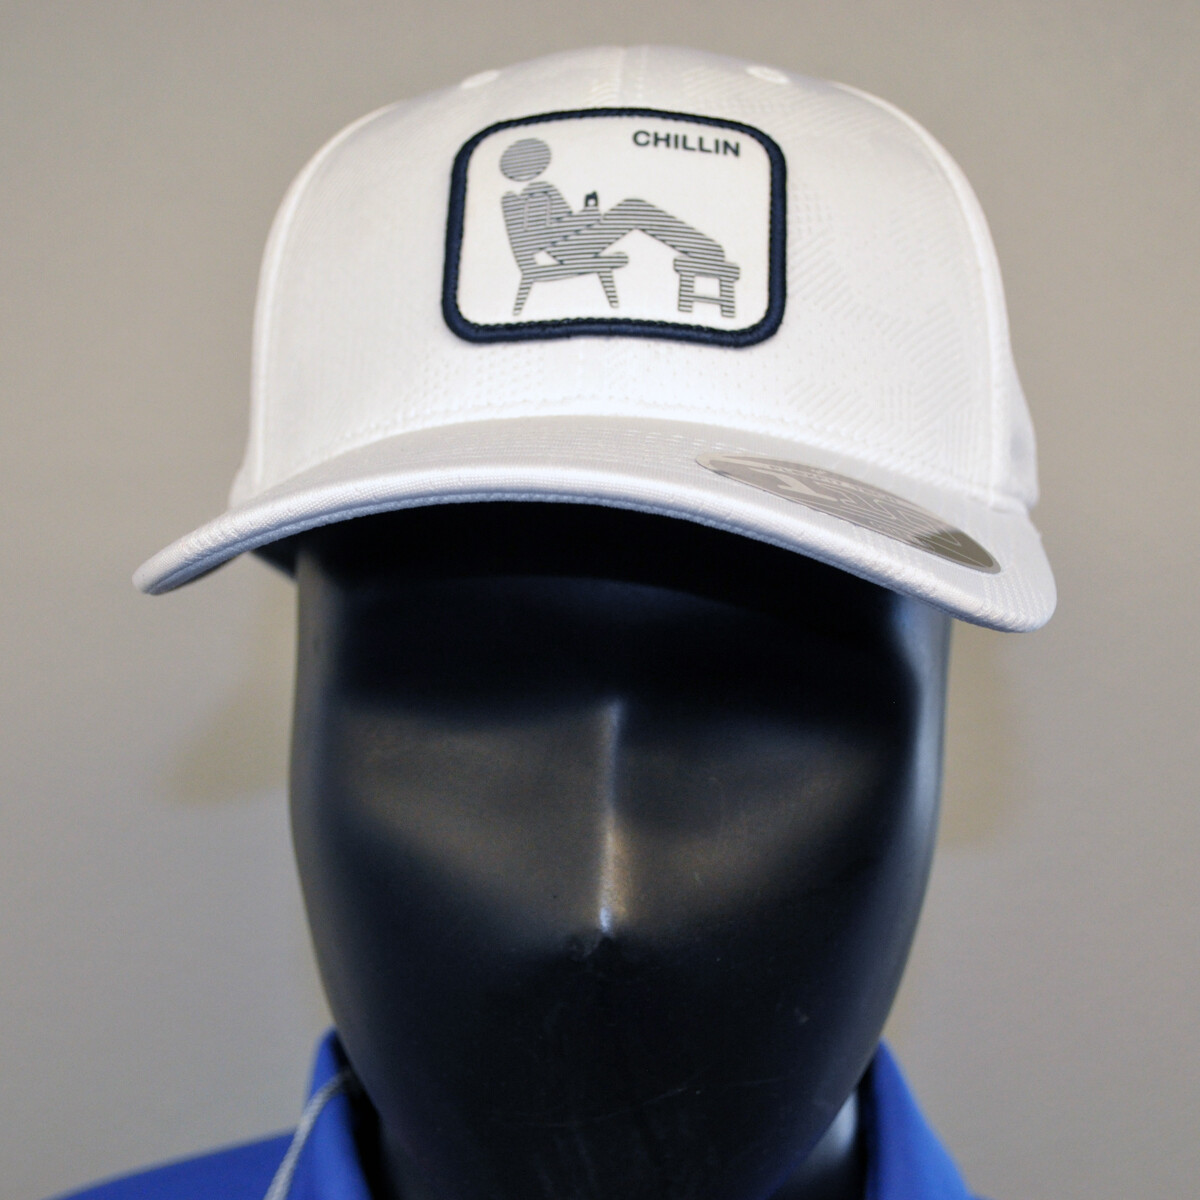 Men's Golf Hat - Chillin Hat - White/Black